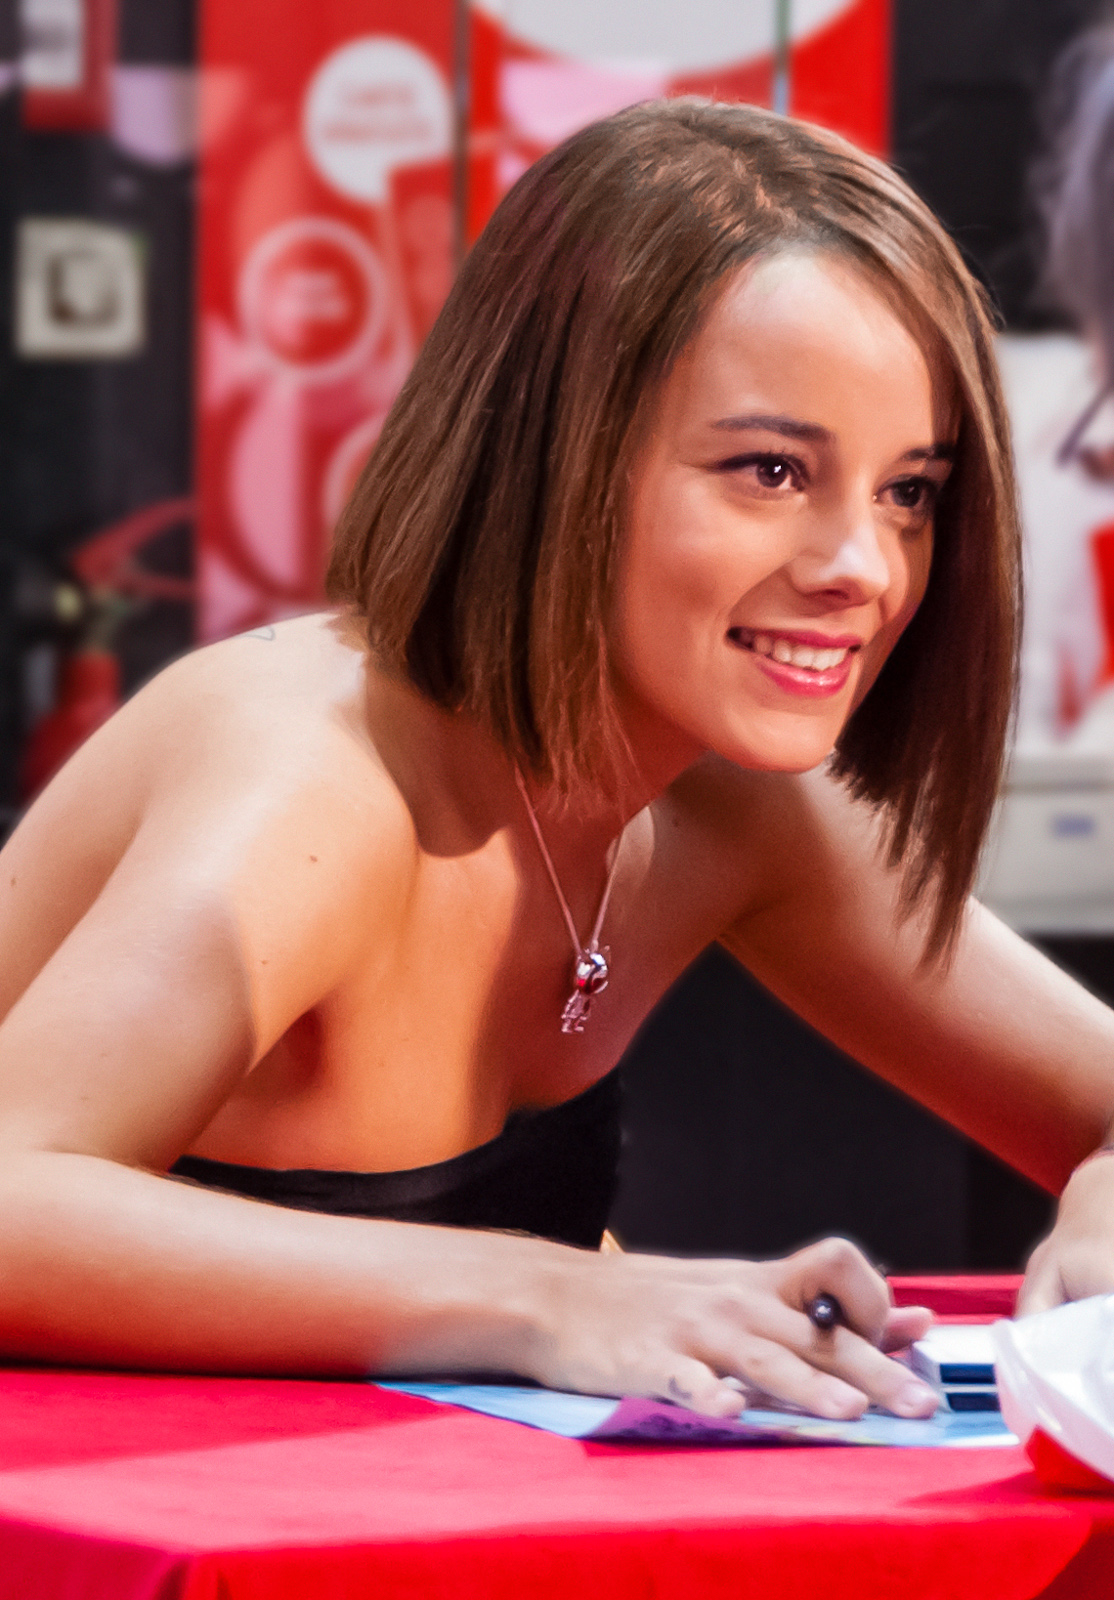 alizee now and then - photo #23